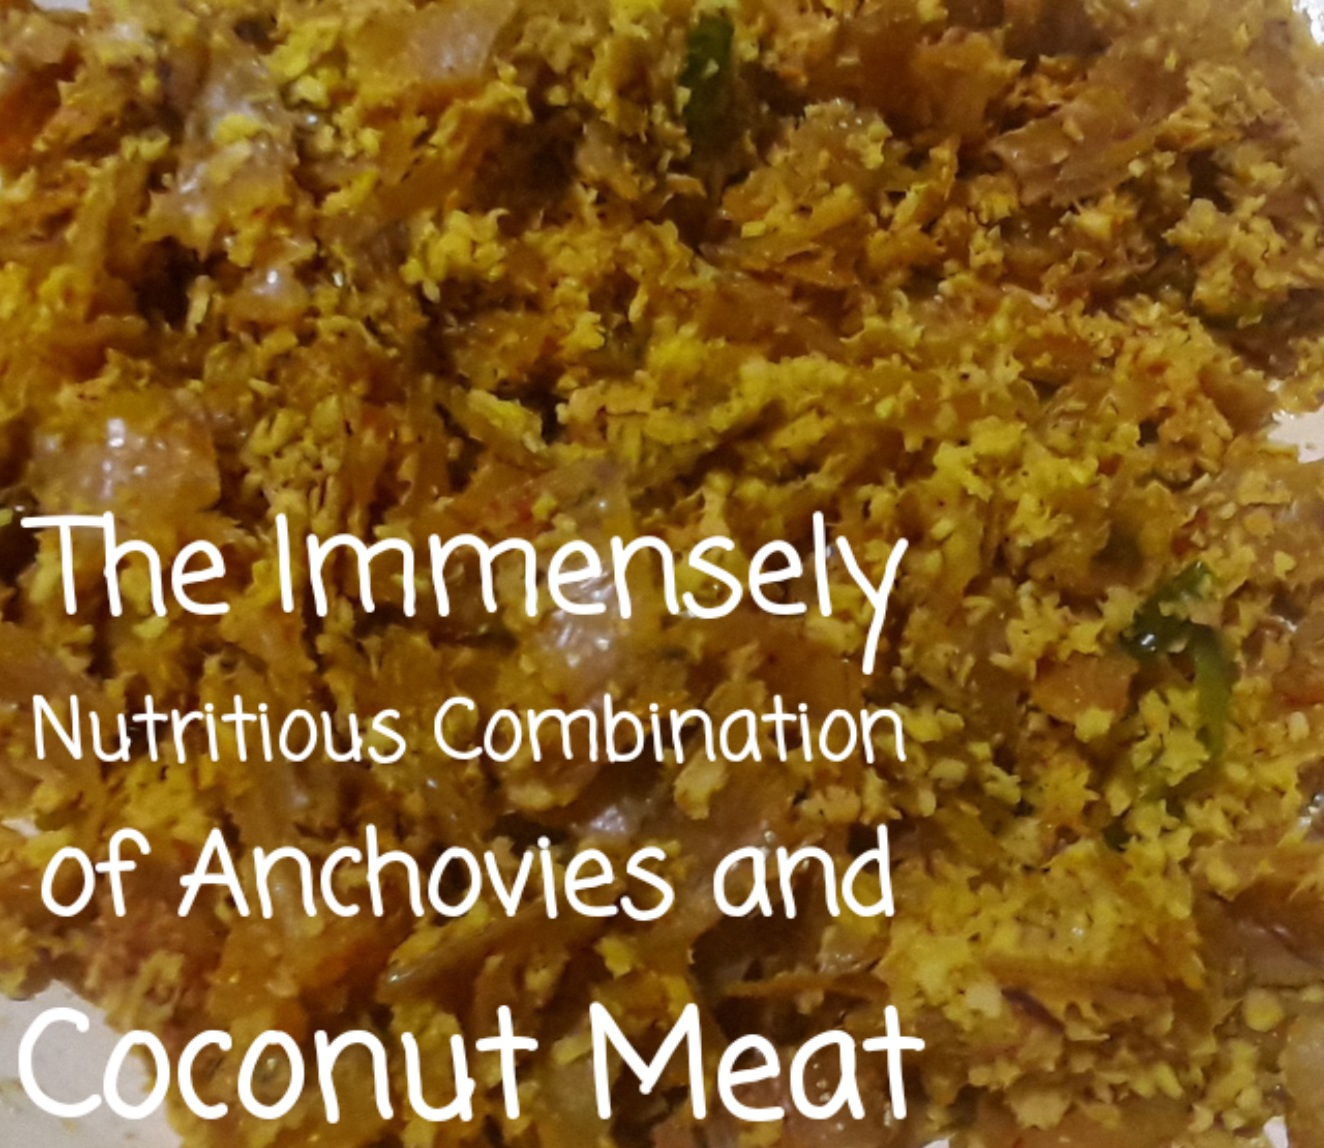 The Immensely Nutritious Combination of Anchovies and Coconut Meat